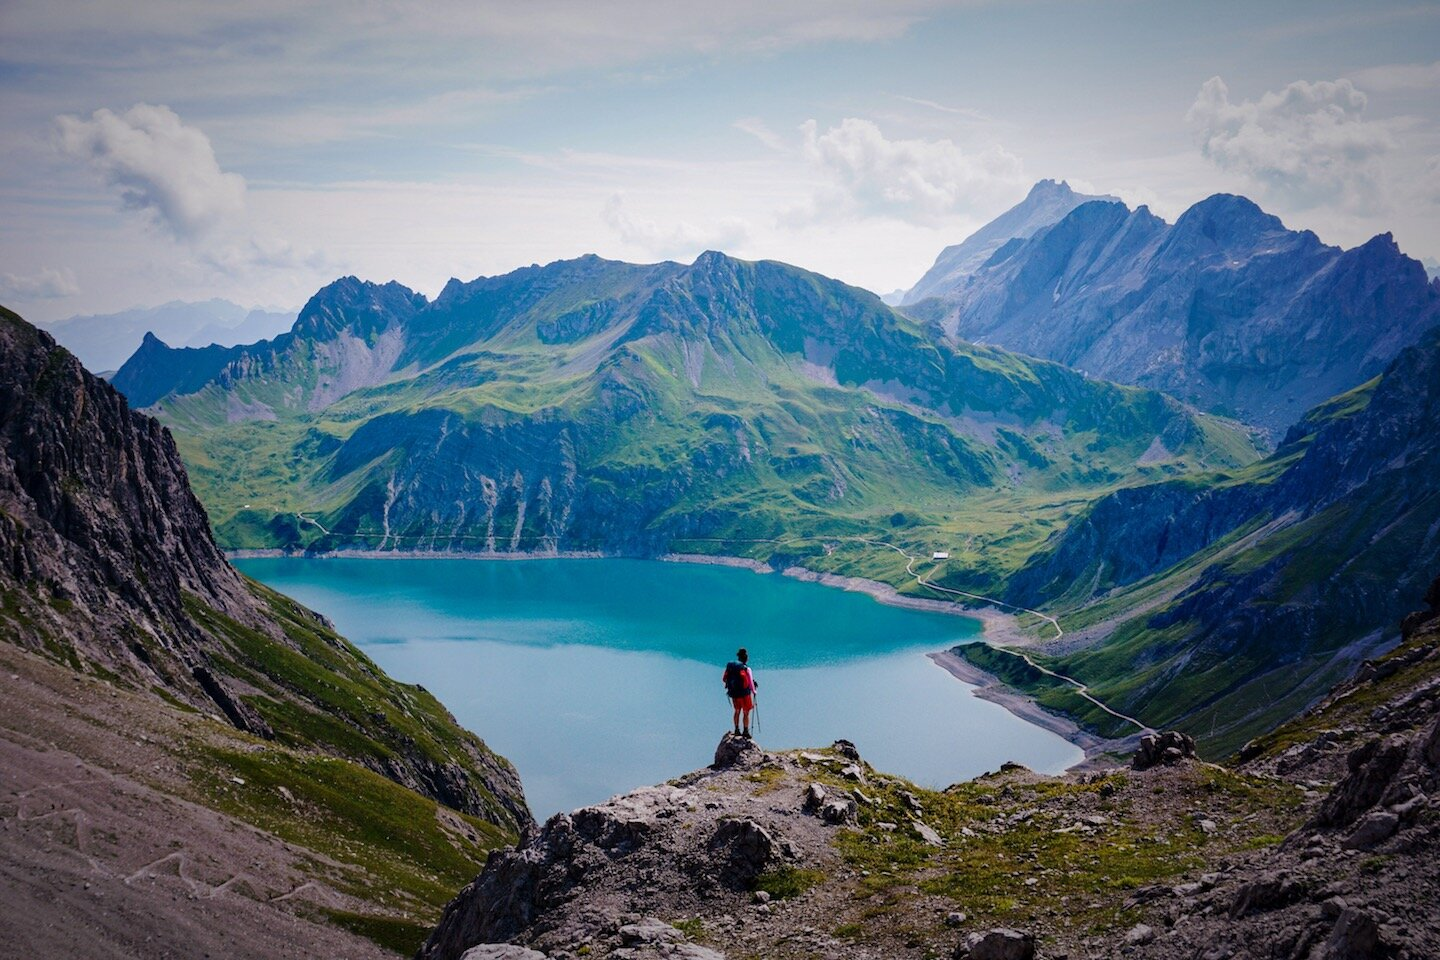 Lünersee loop trail is something everyone can do and one of the best hiking trails in Europe.